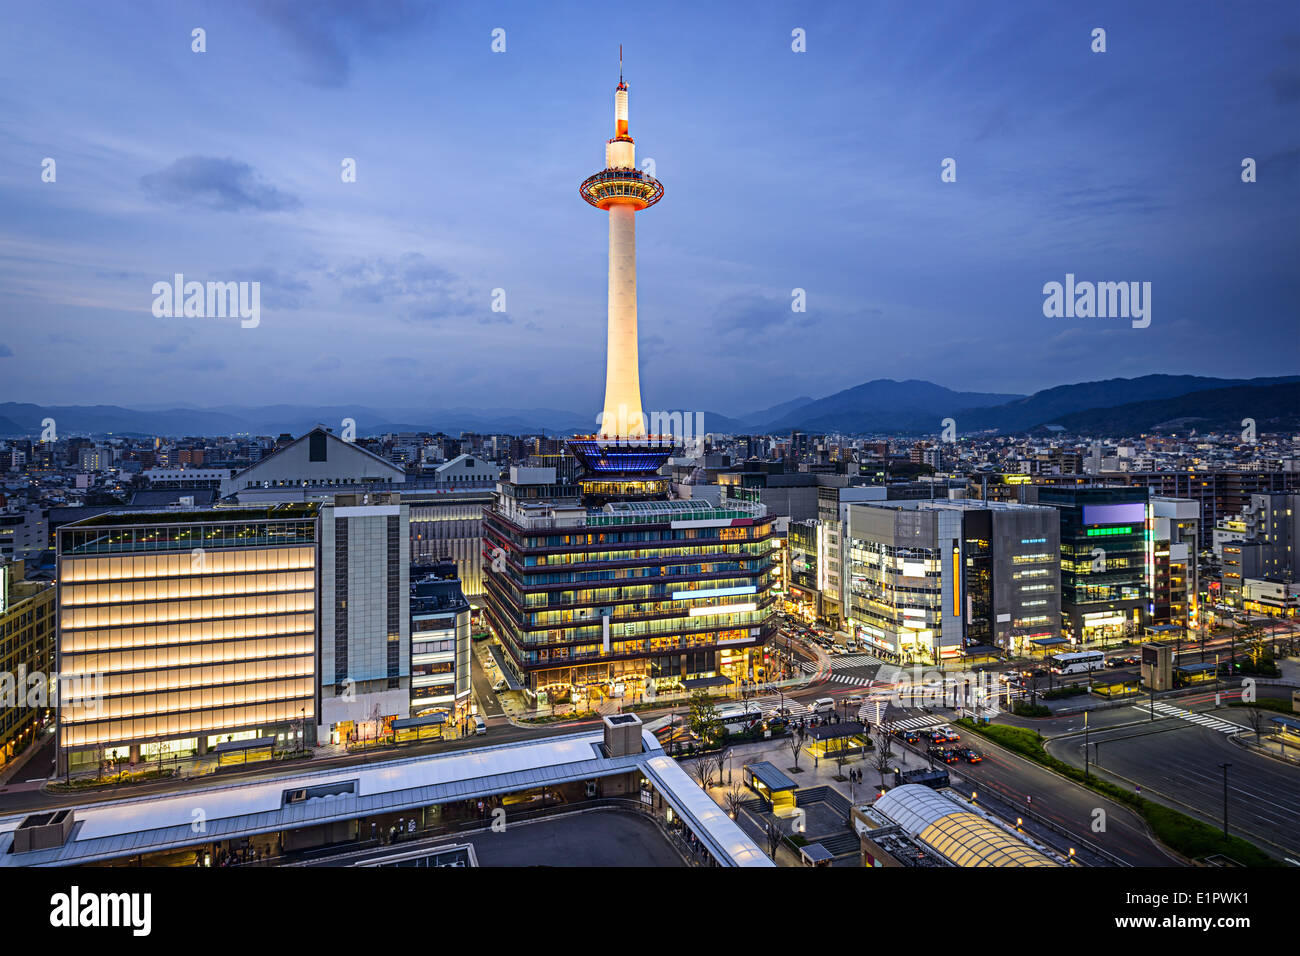 Kyoto, Japan modern skyline. - Stock Image